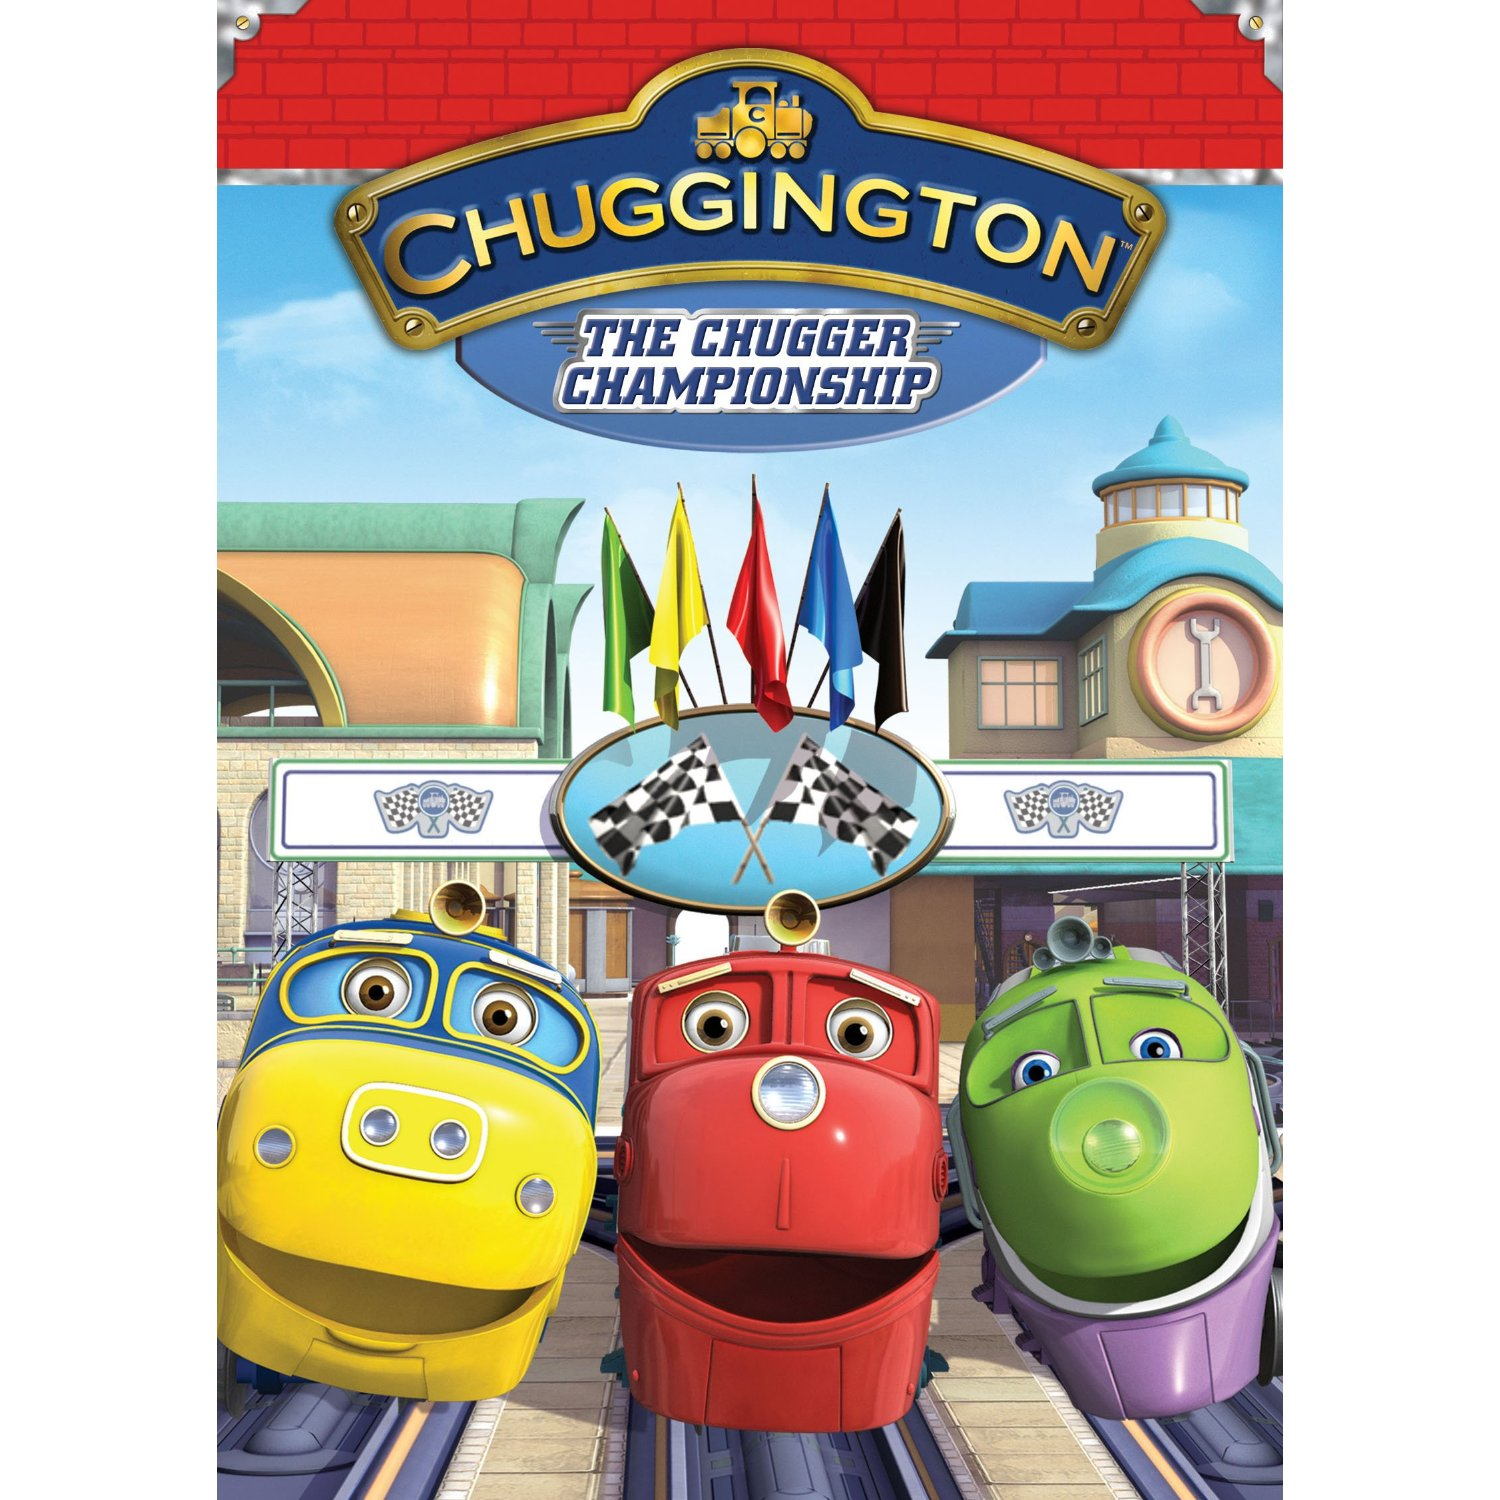 Chuggington: The Chugger Championship DVD Review & #giveaway